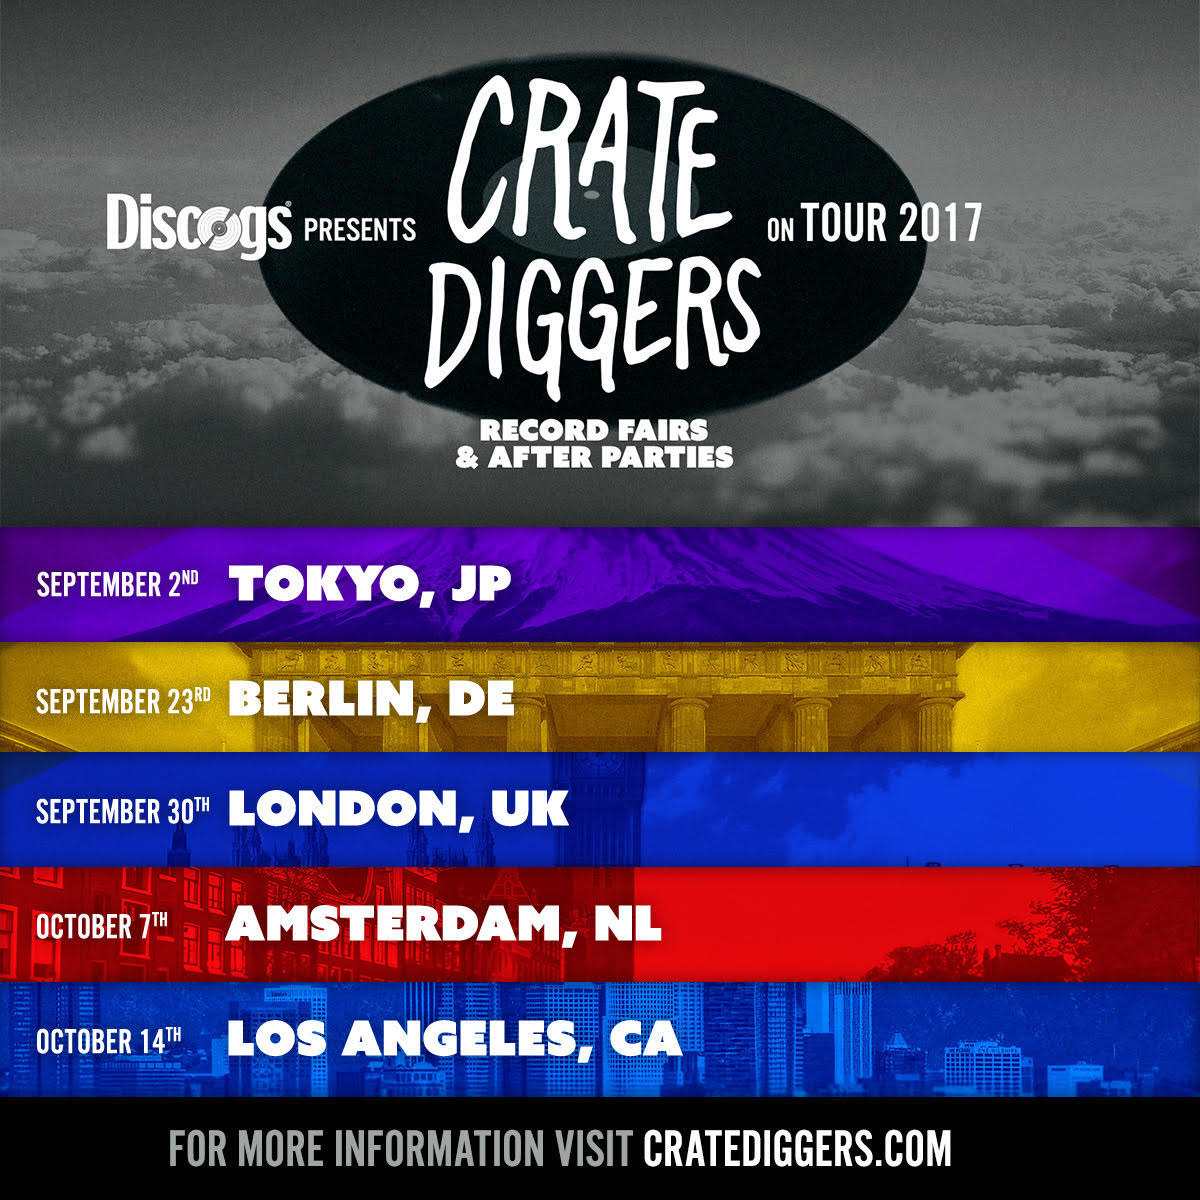 Discogs Crate Diggers Tour